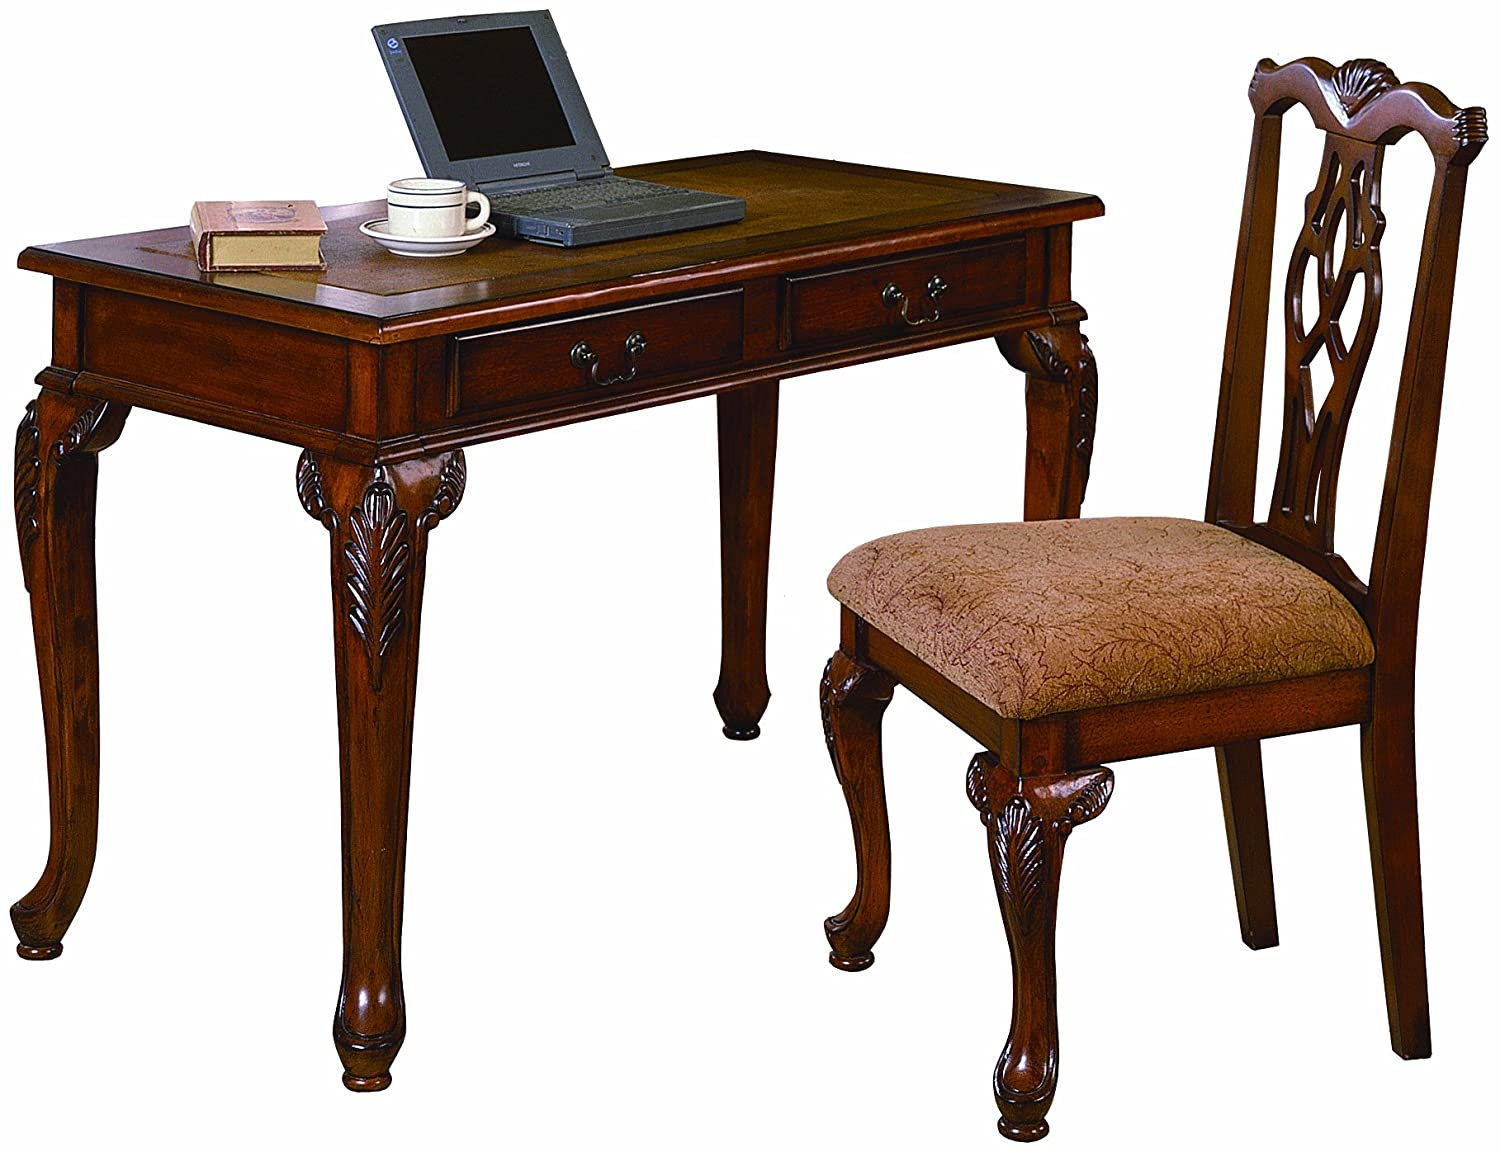 Amazon.com: Crown Mark Fairfax Home office Desk/Chair Set: Kitchen ...